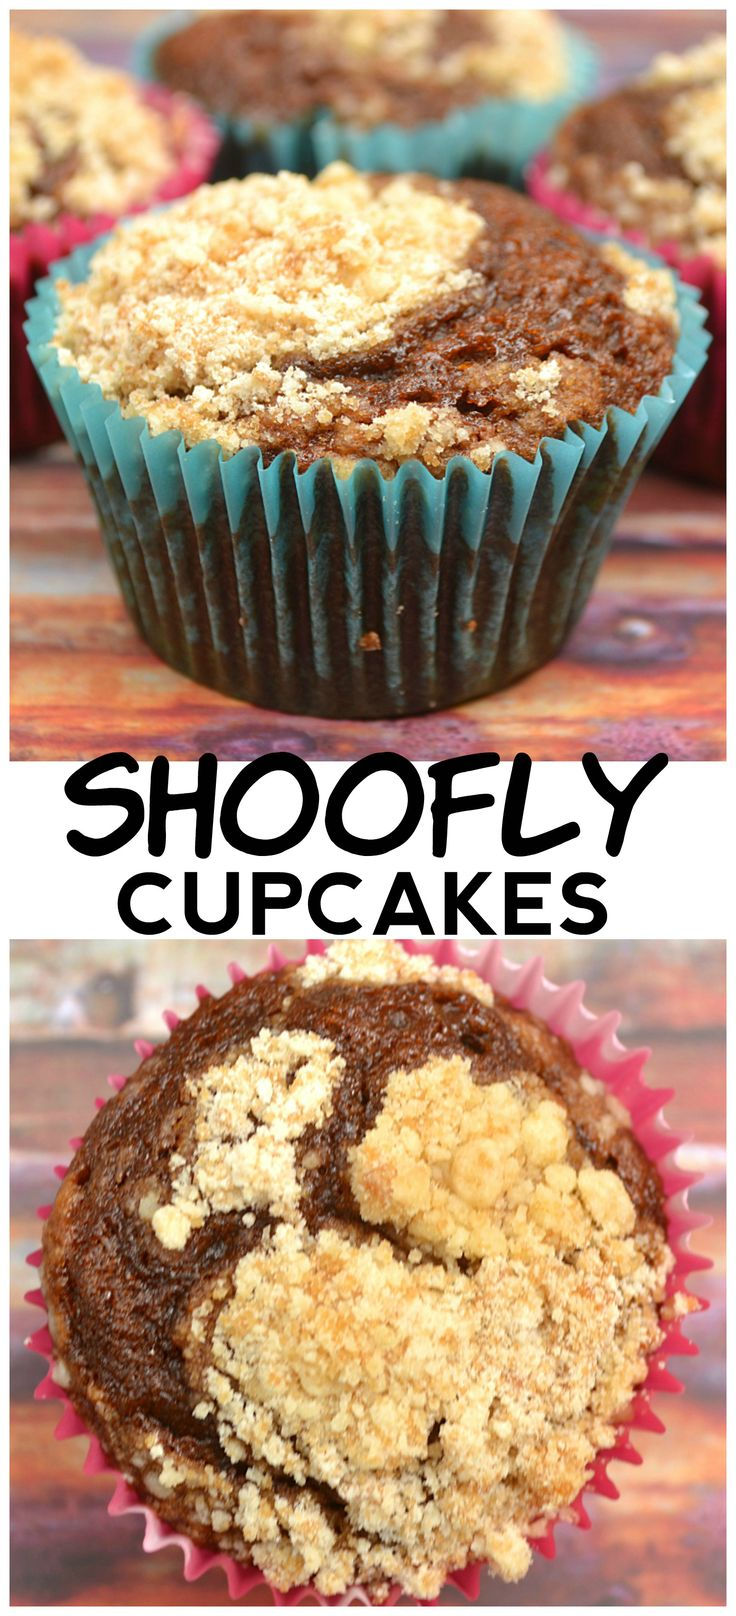 Shoofly Cupcakes. A sweet, moist molasses PA Dutch / Amish / Lancaster favorite made into fun little cakes. Vegan friendly   www.craftycookingmama.com